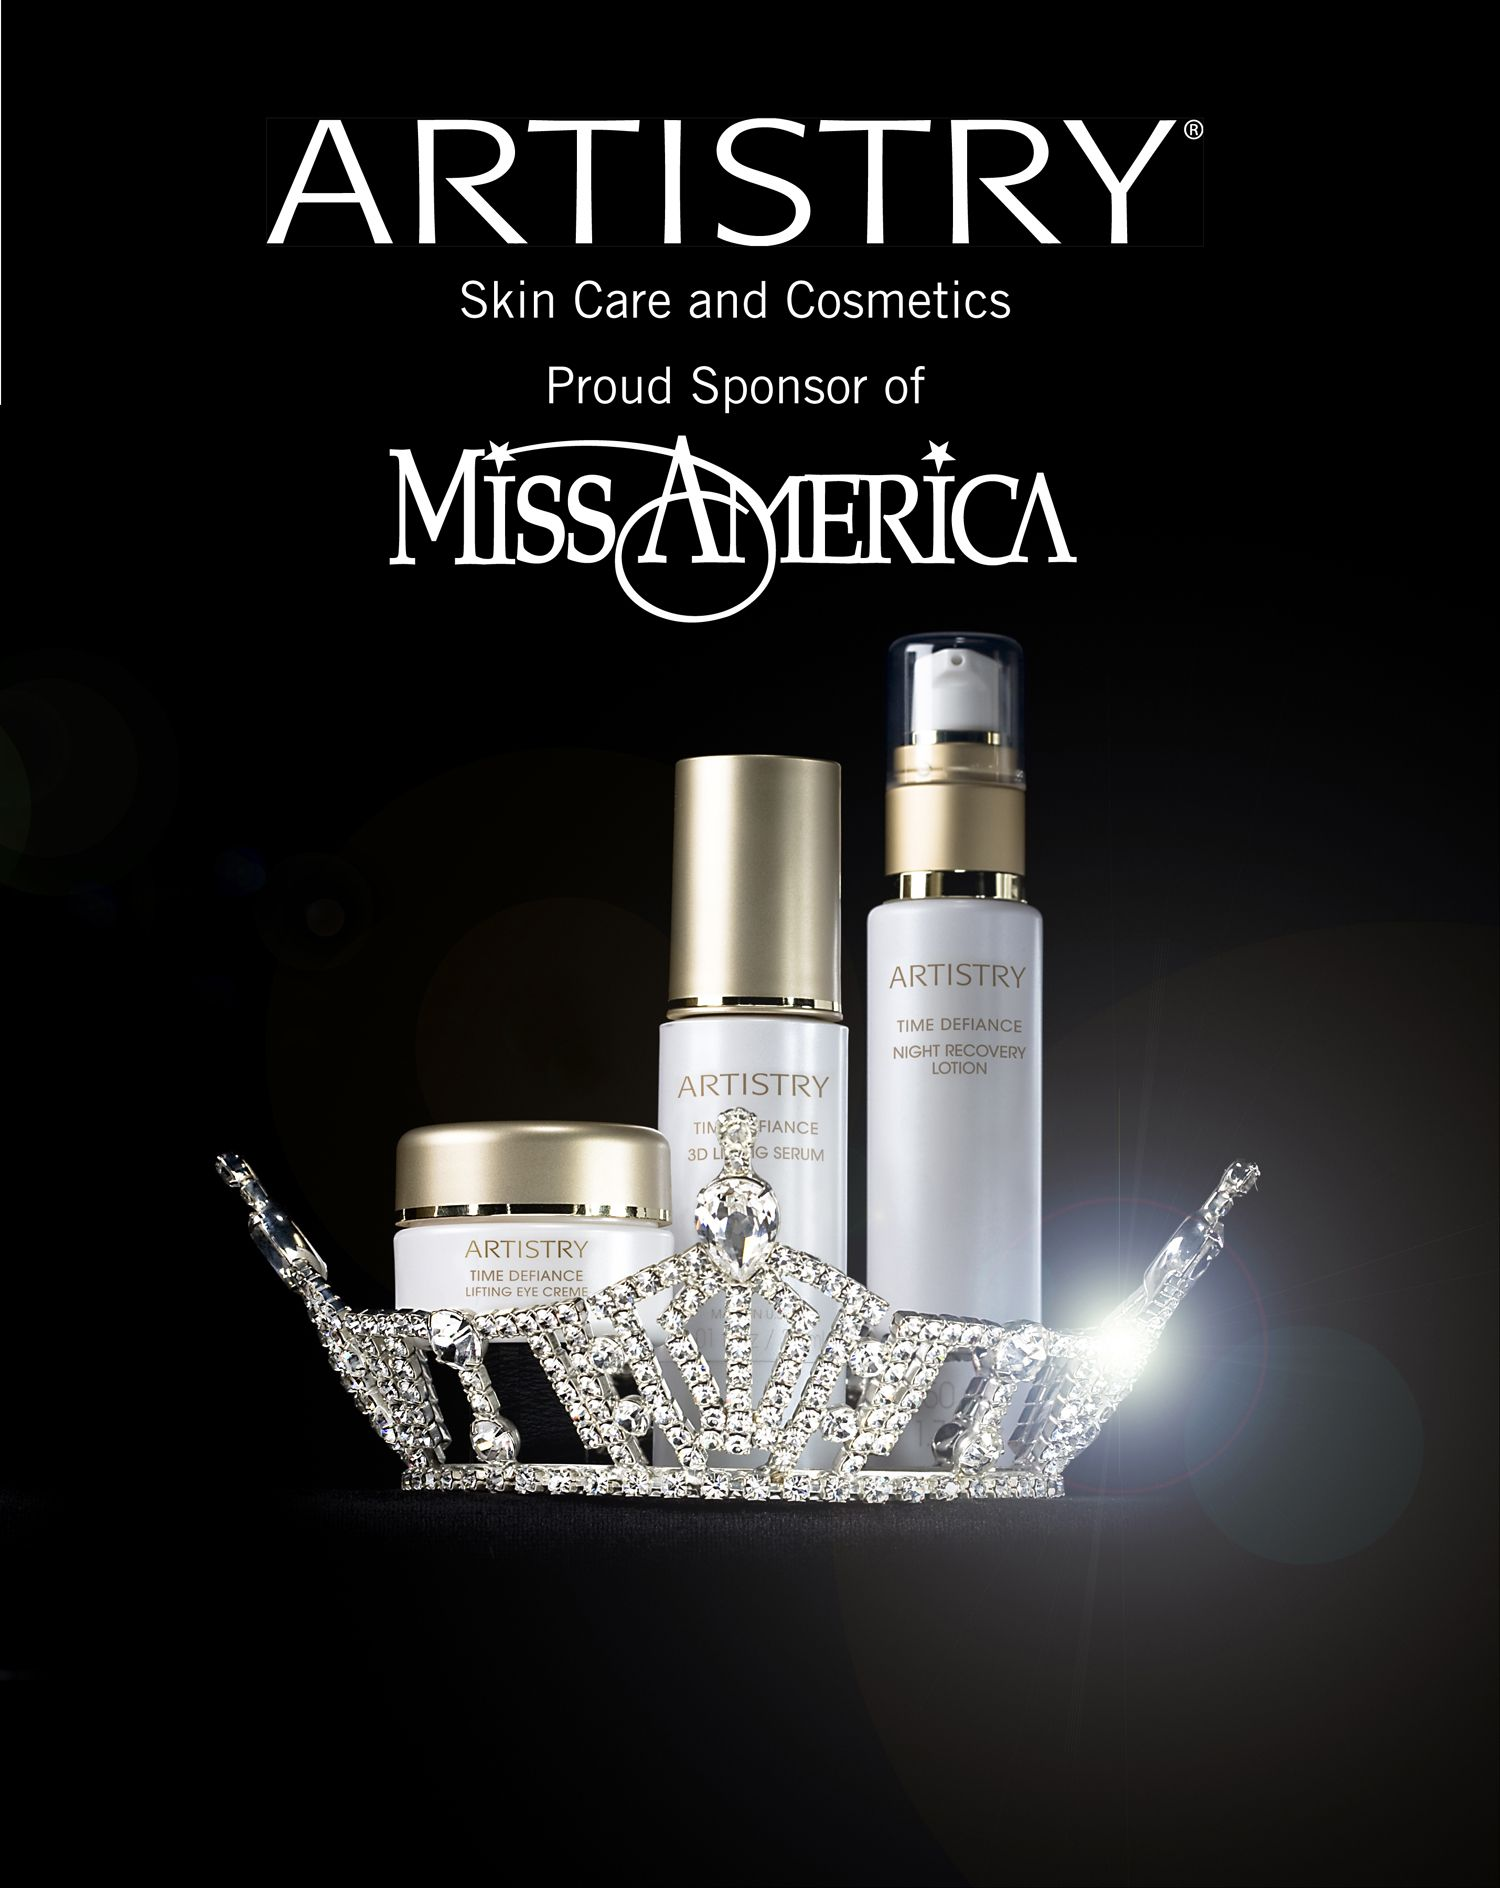 artistry Amway Global and ARTISTRY® partner with the